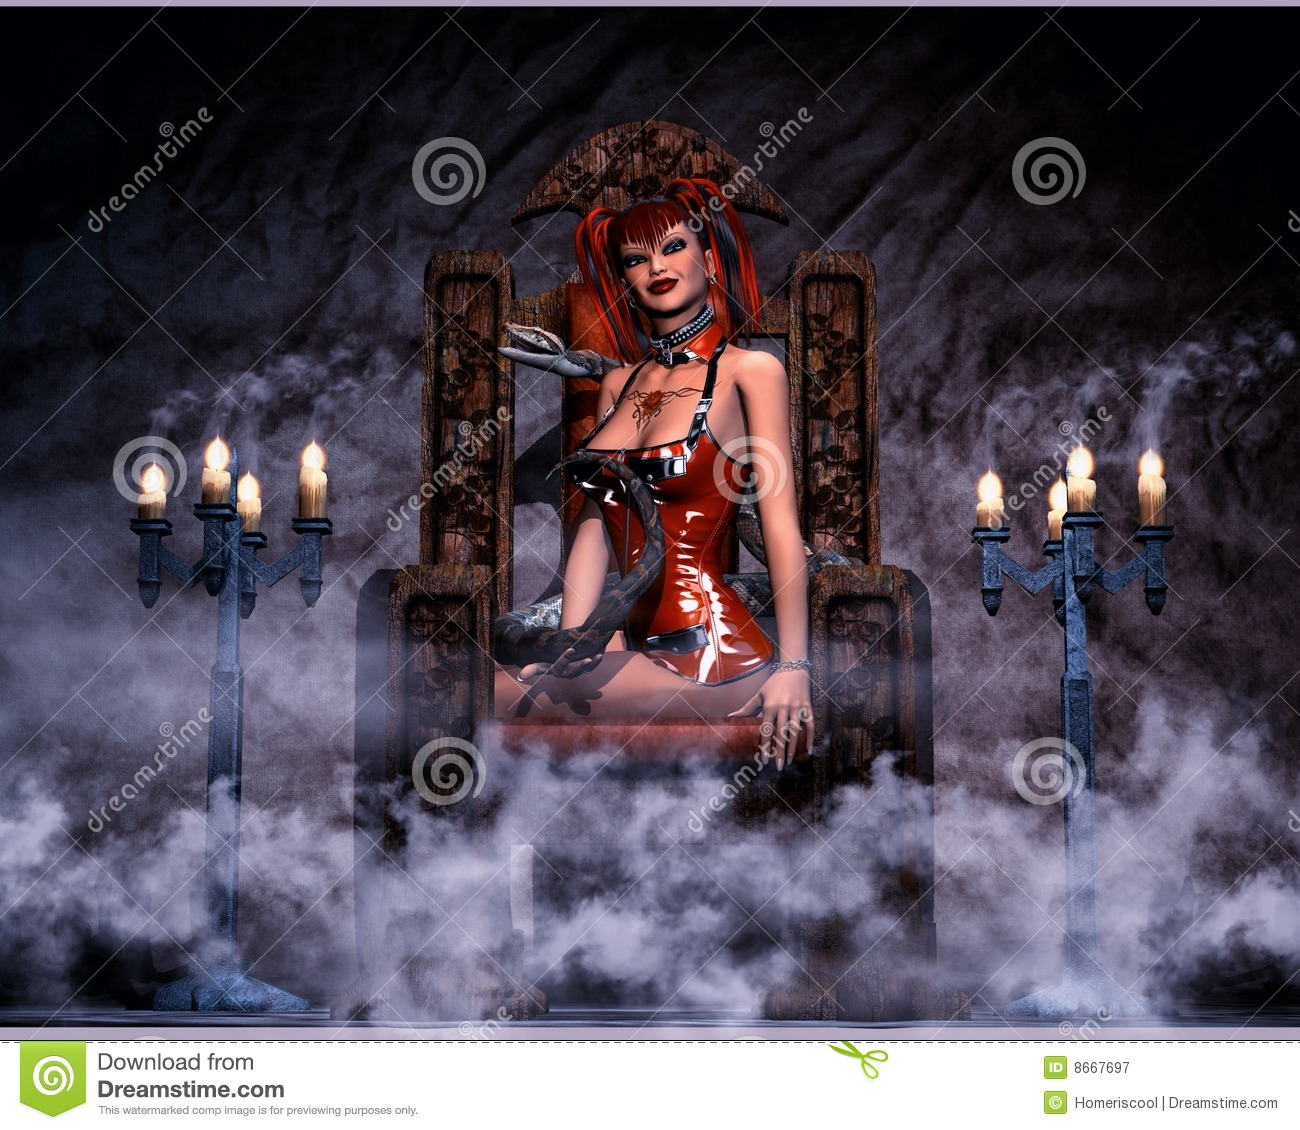 chair design styles outdoor wood sexy gothic woman with snake royalty free stock photography - image: 8667697